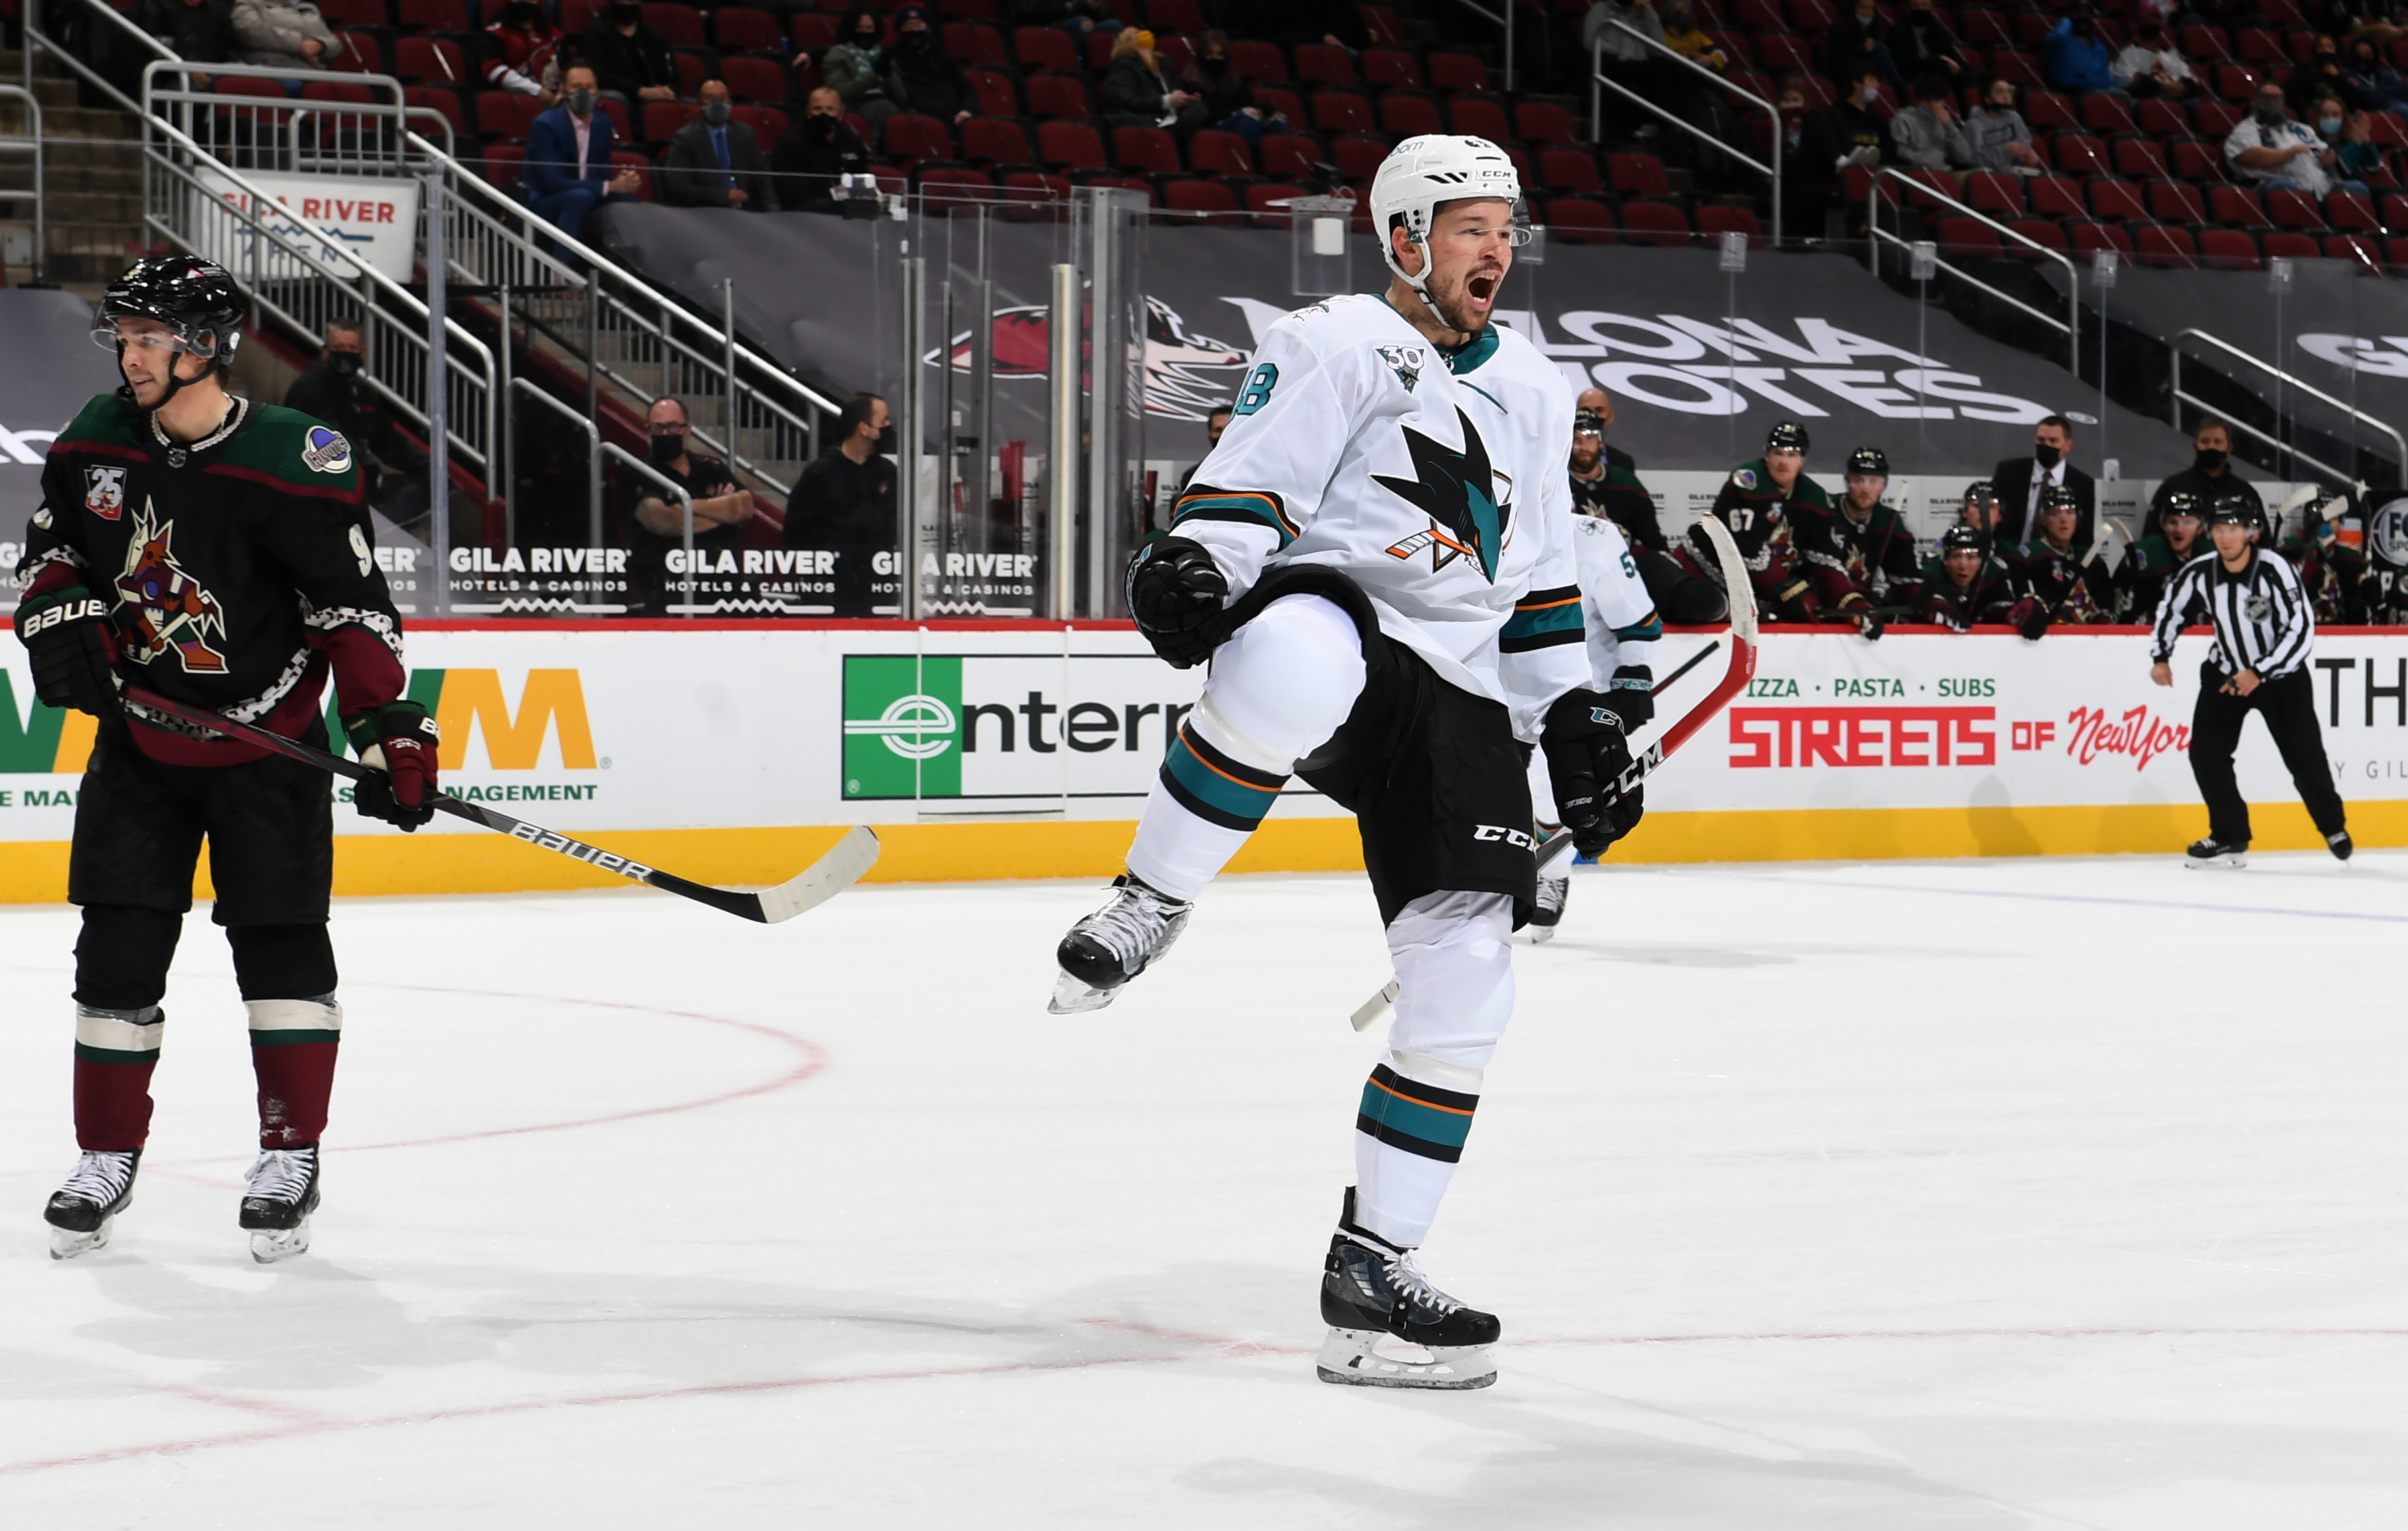 Tomas Hertl #48 of the San Jose Sharks celebrates after scoring his second goal against the Arizona Coyotes during the first period of the NHL hockey game at Gila River Arena on January 14, 2021 in Glendale, Arizona.